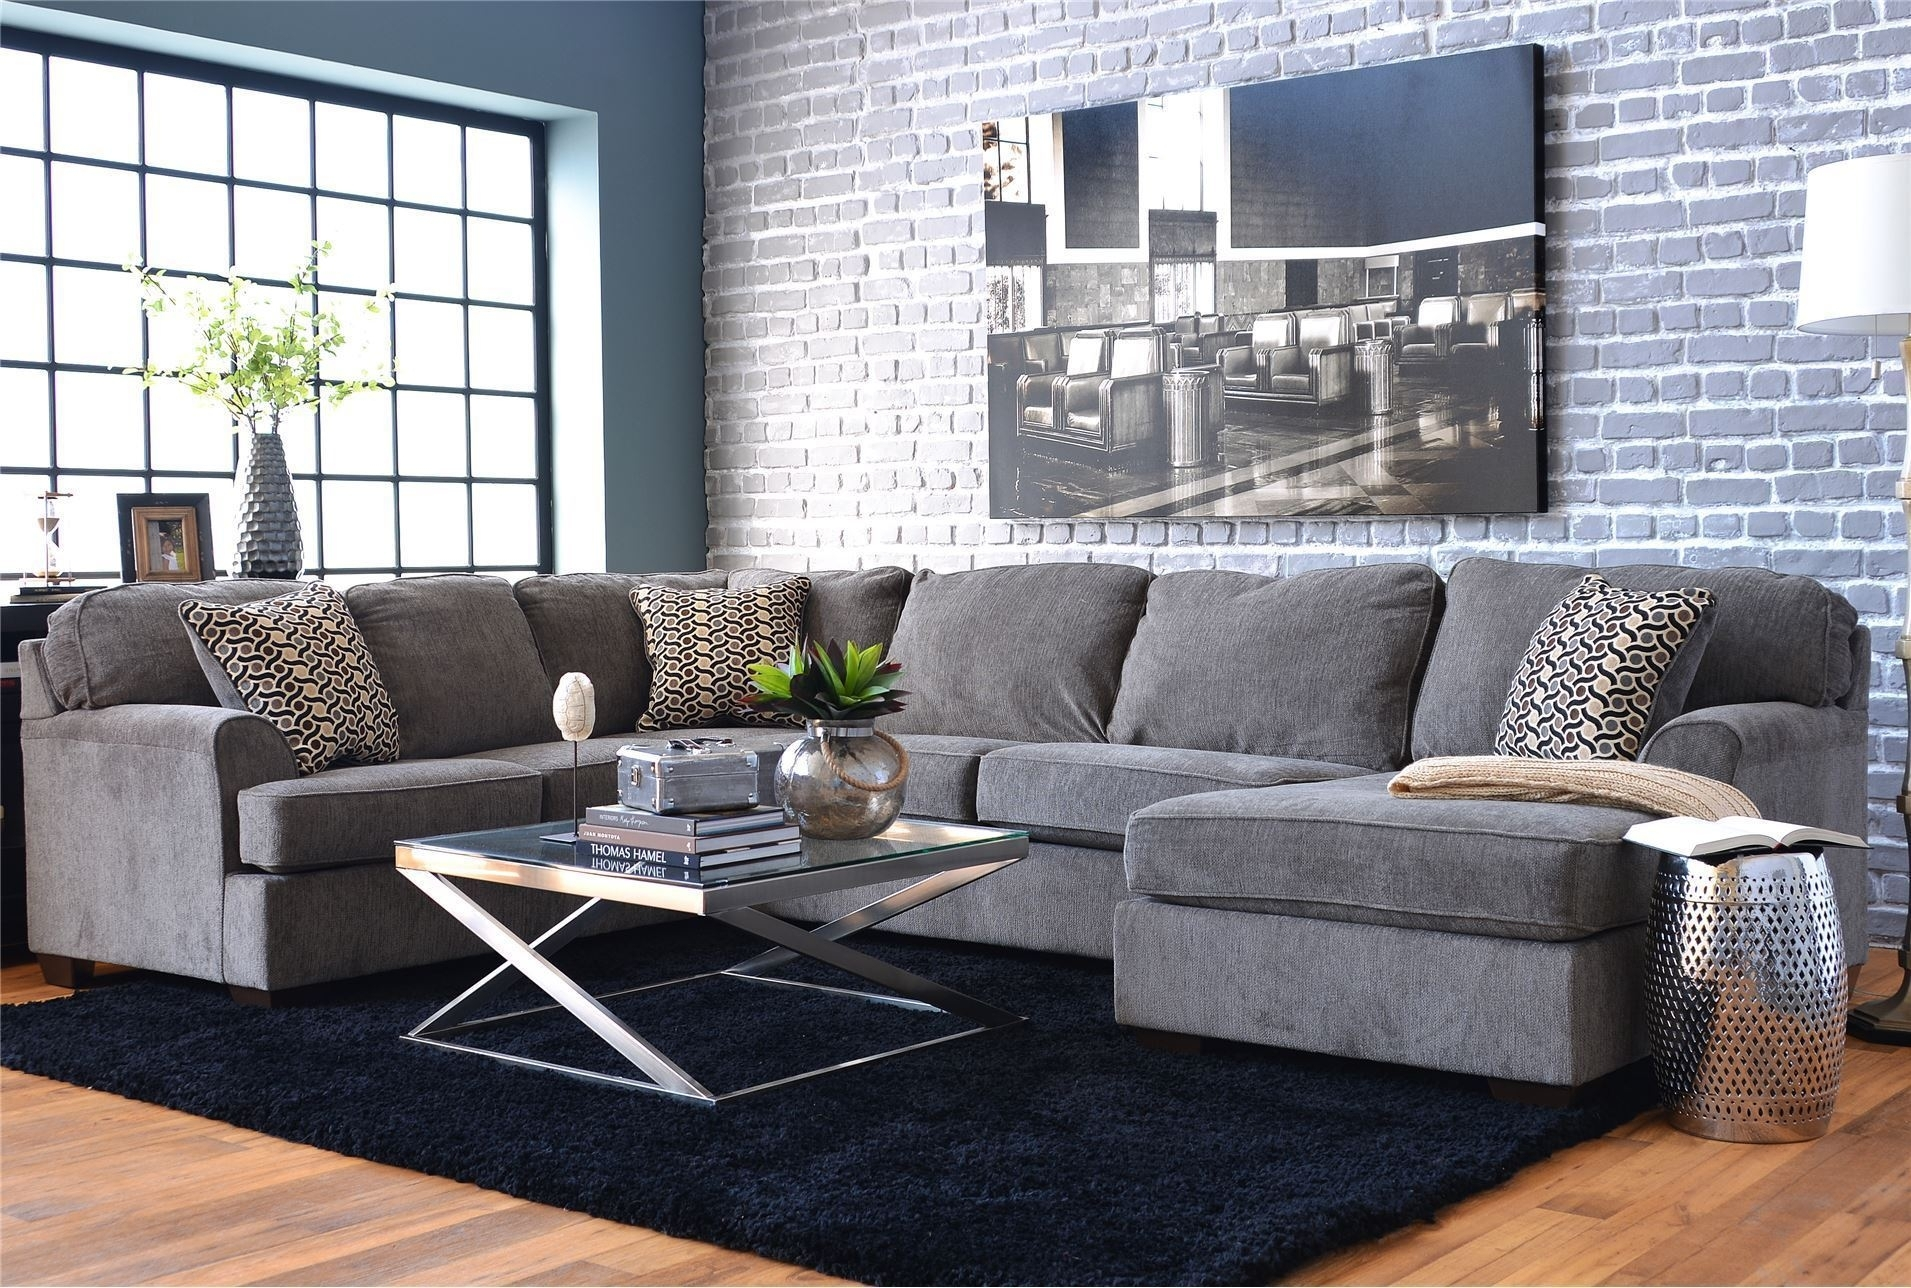 Jayceon Steel 3 Pc Laf Corner Chaise Sectional T Regarding Malbry Point 3 Piece Sectionals With Laf Chaise (View 19 of 25)